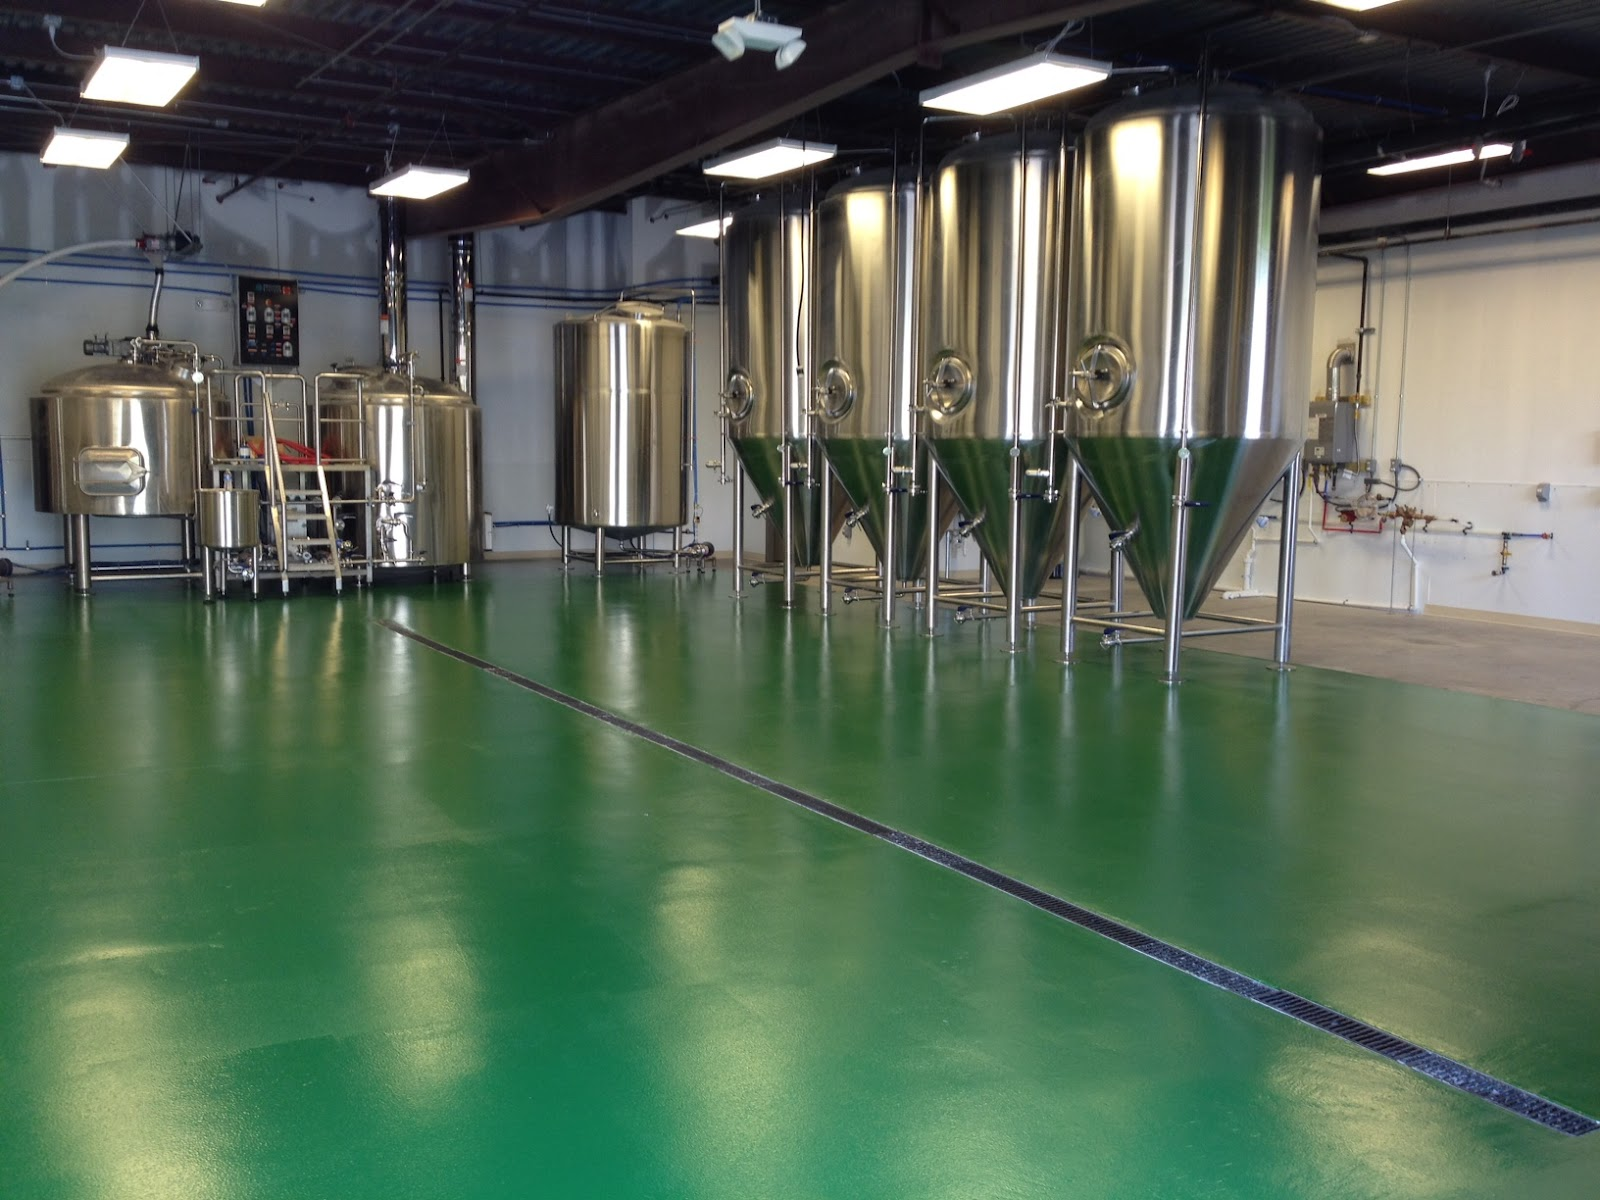 Green Floor turtle anarchy brewing company: green floors!!!